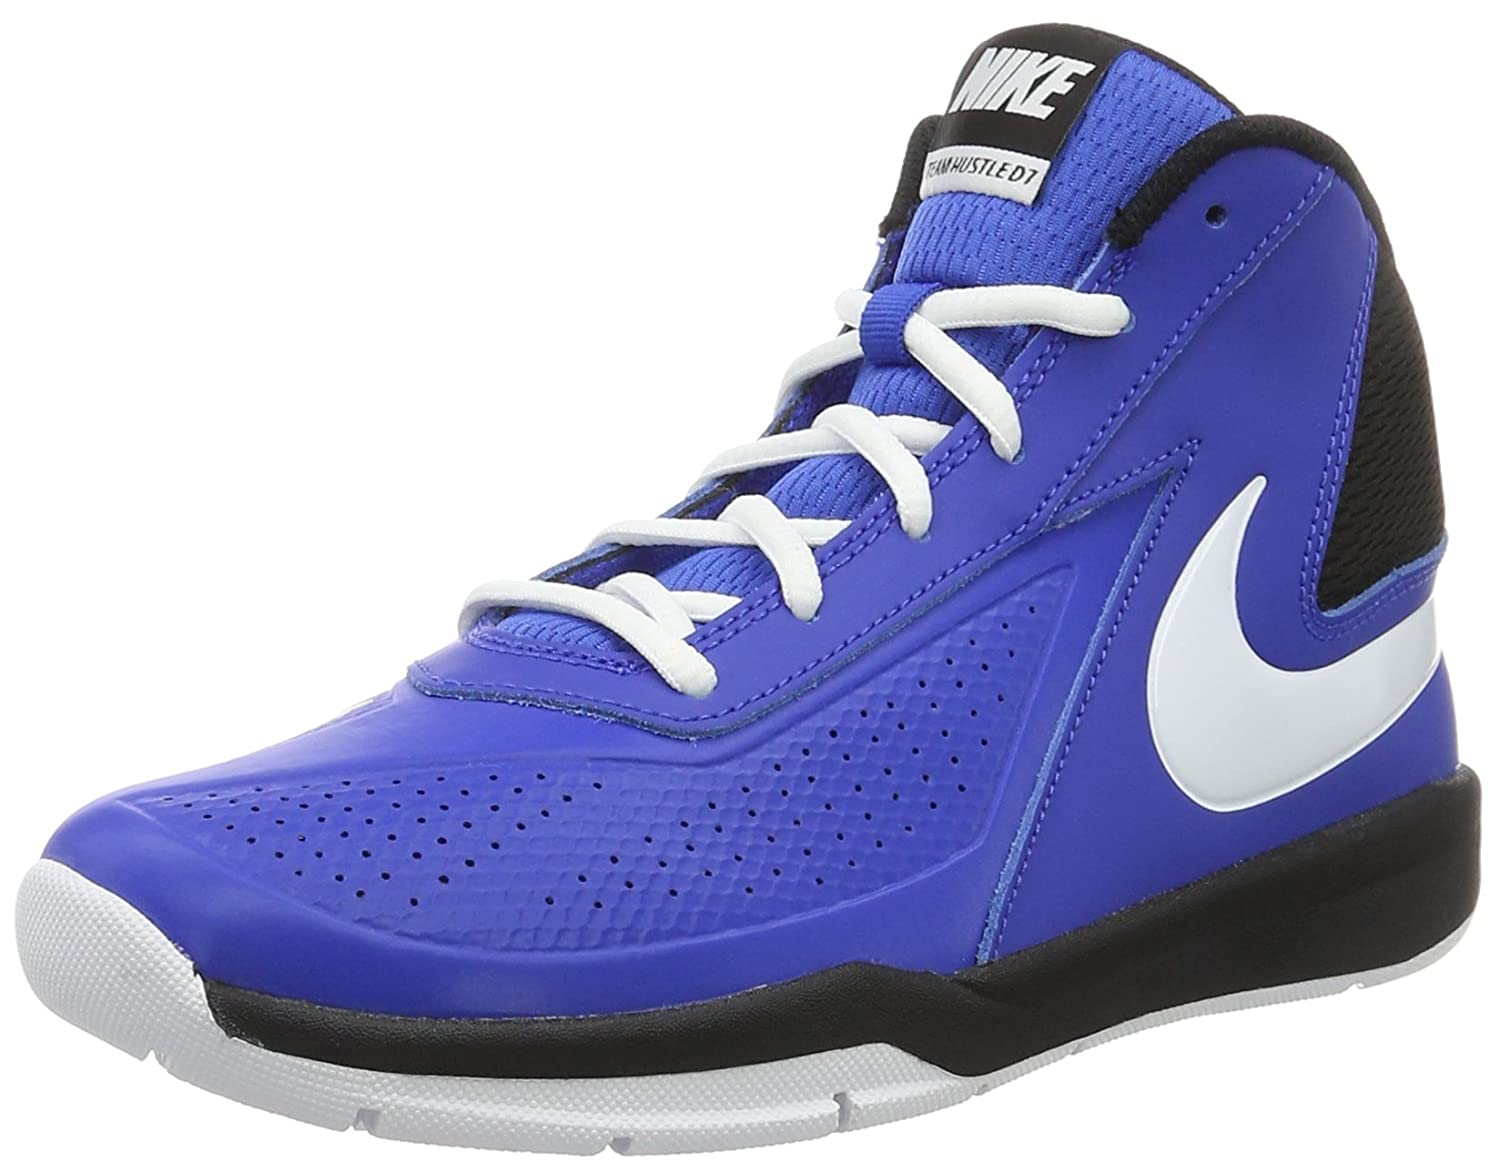 Nike Men s Team Hustle D 7 (Gs) Basketball Shoes  Amazon.co.uk  Shoes   Bags b67d78620